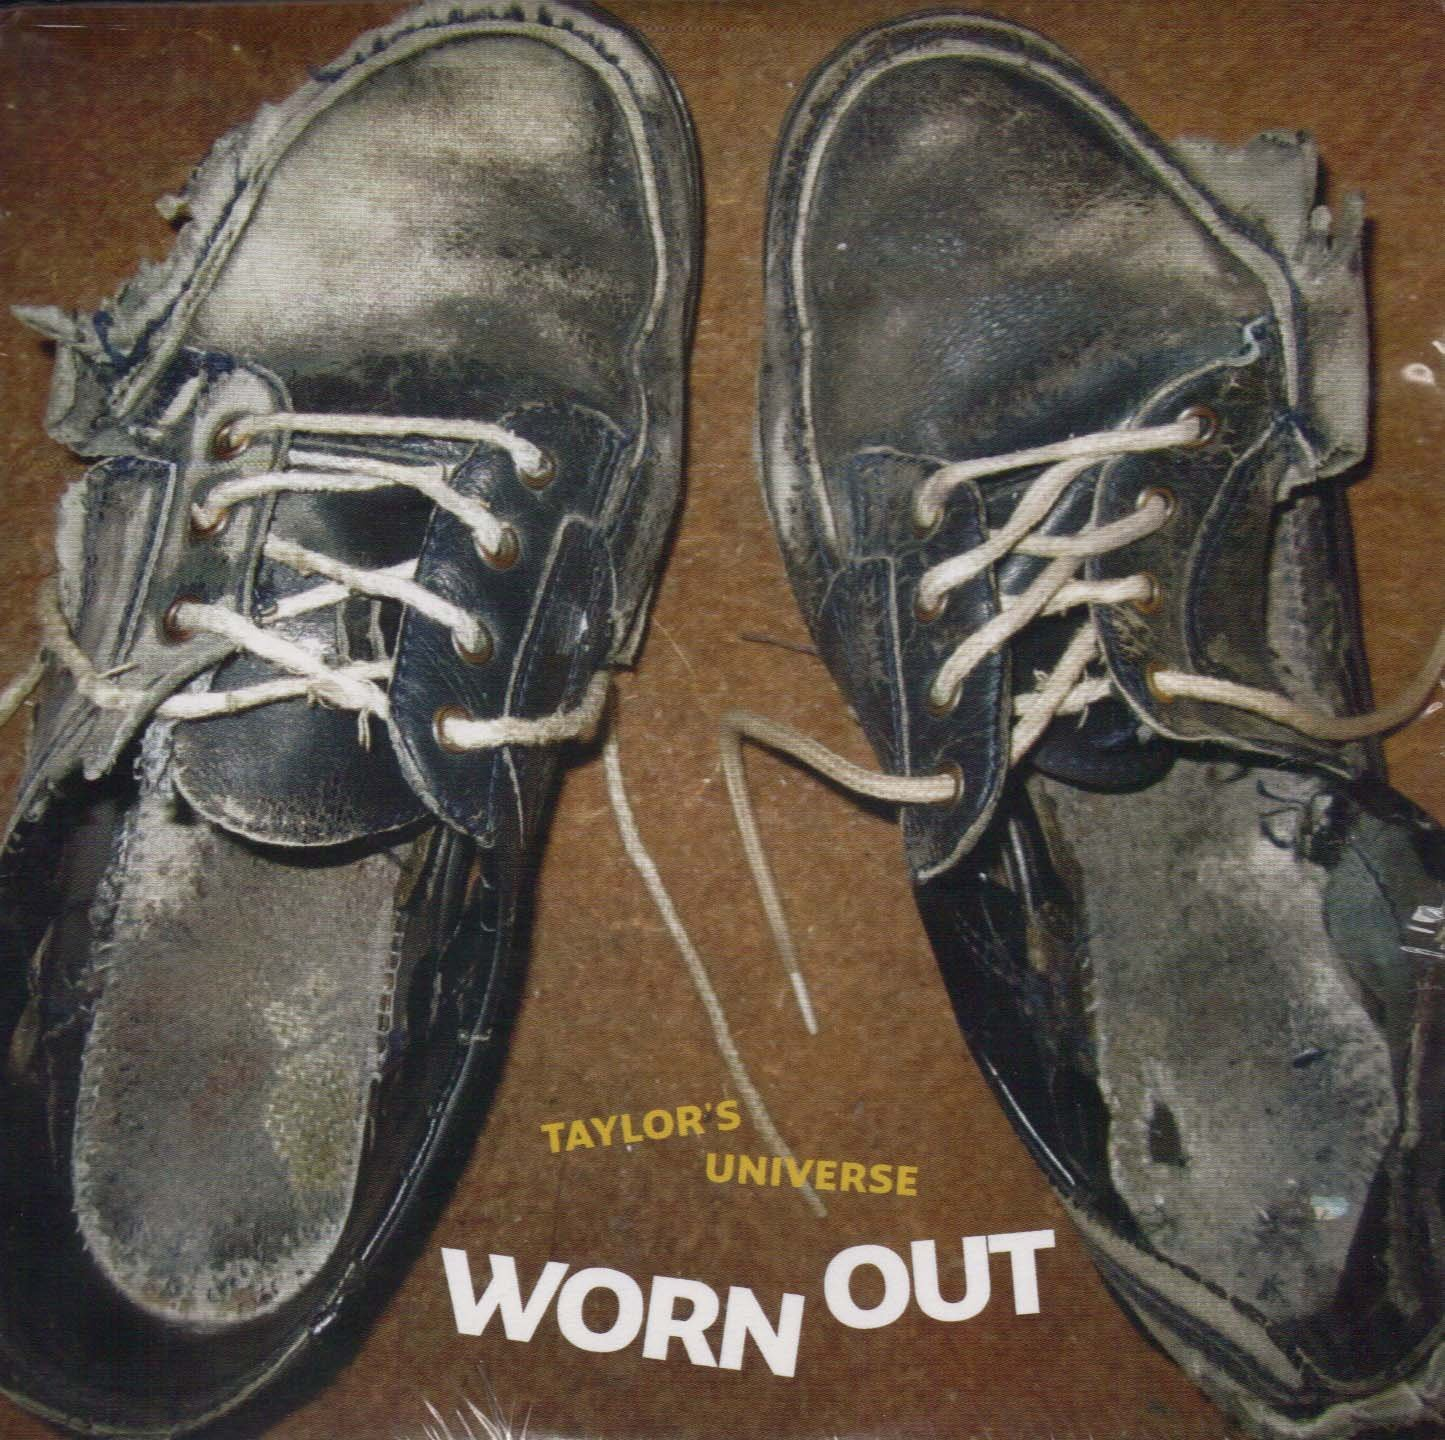 Worn Out Cover art